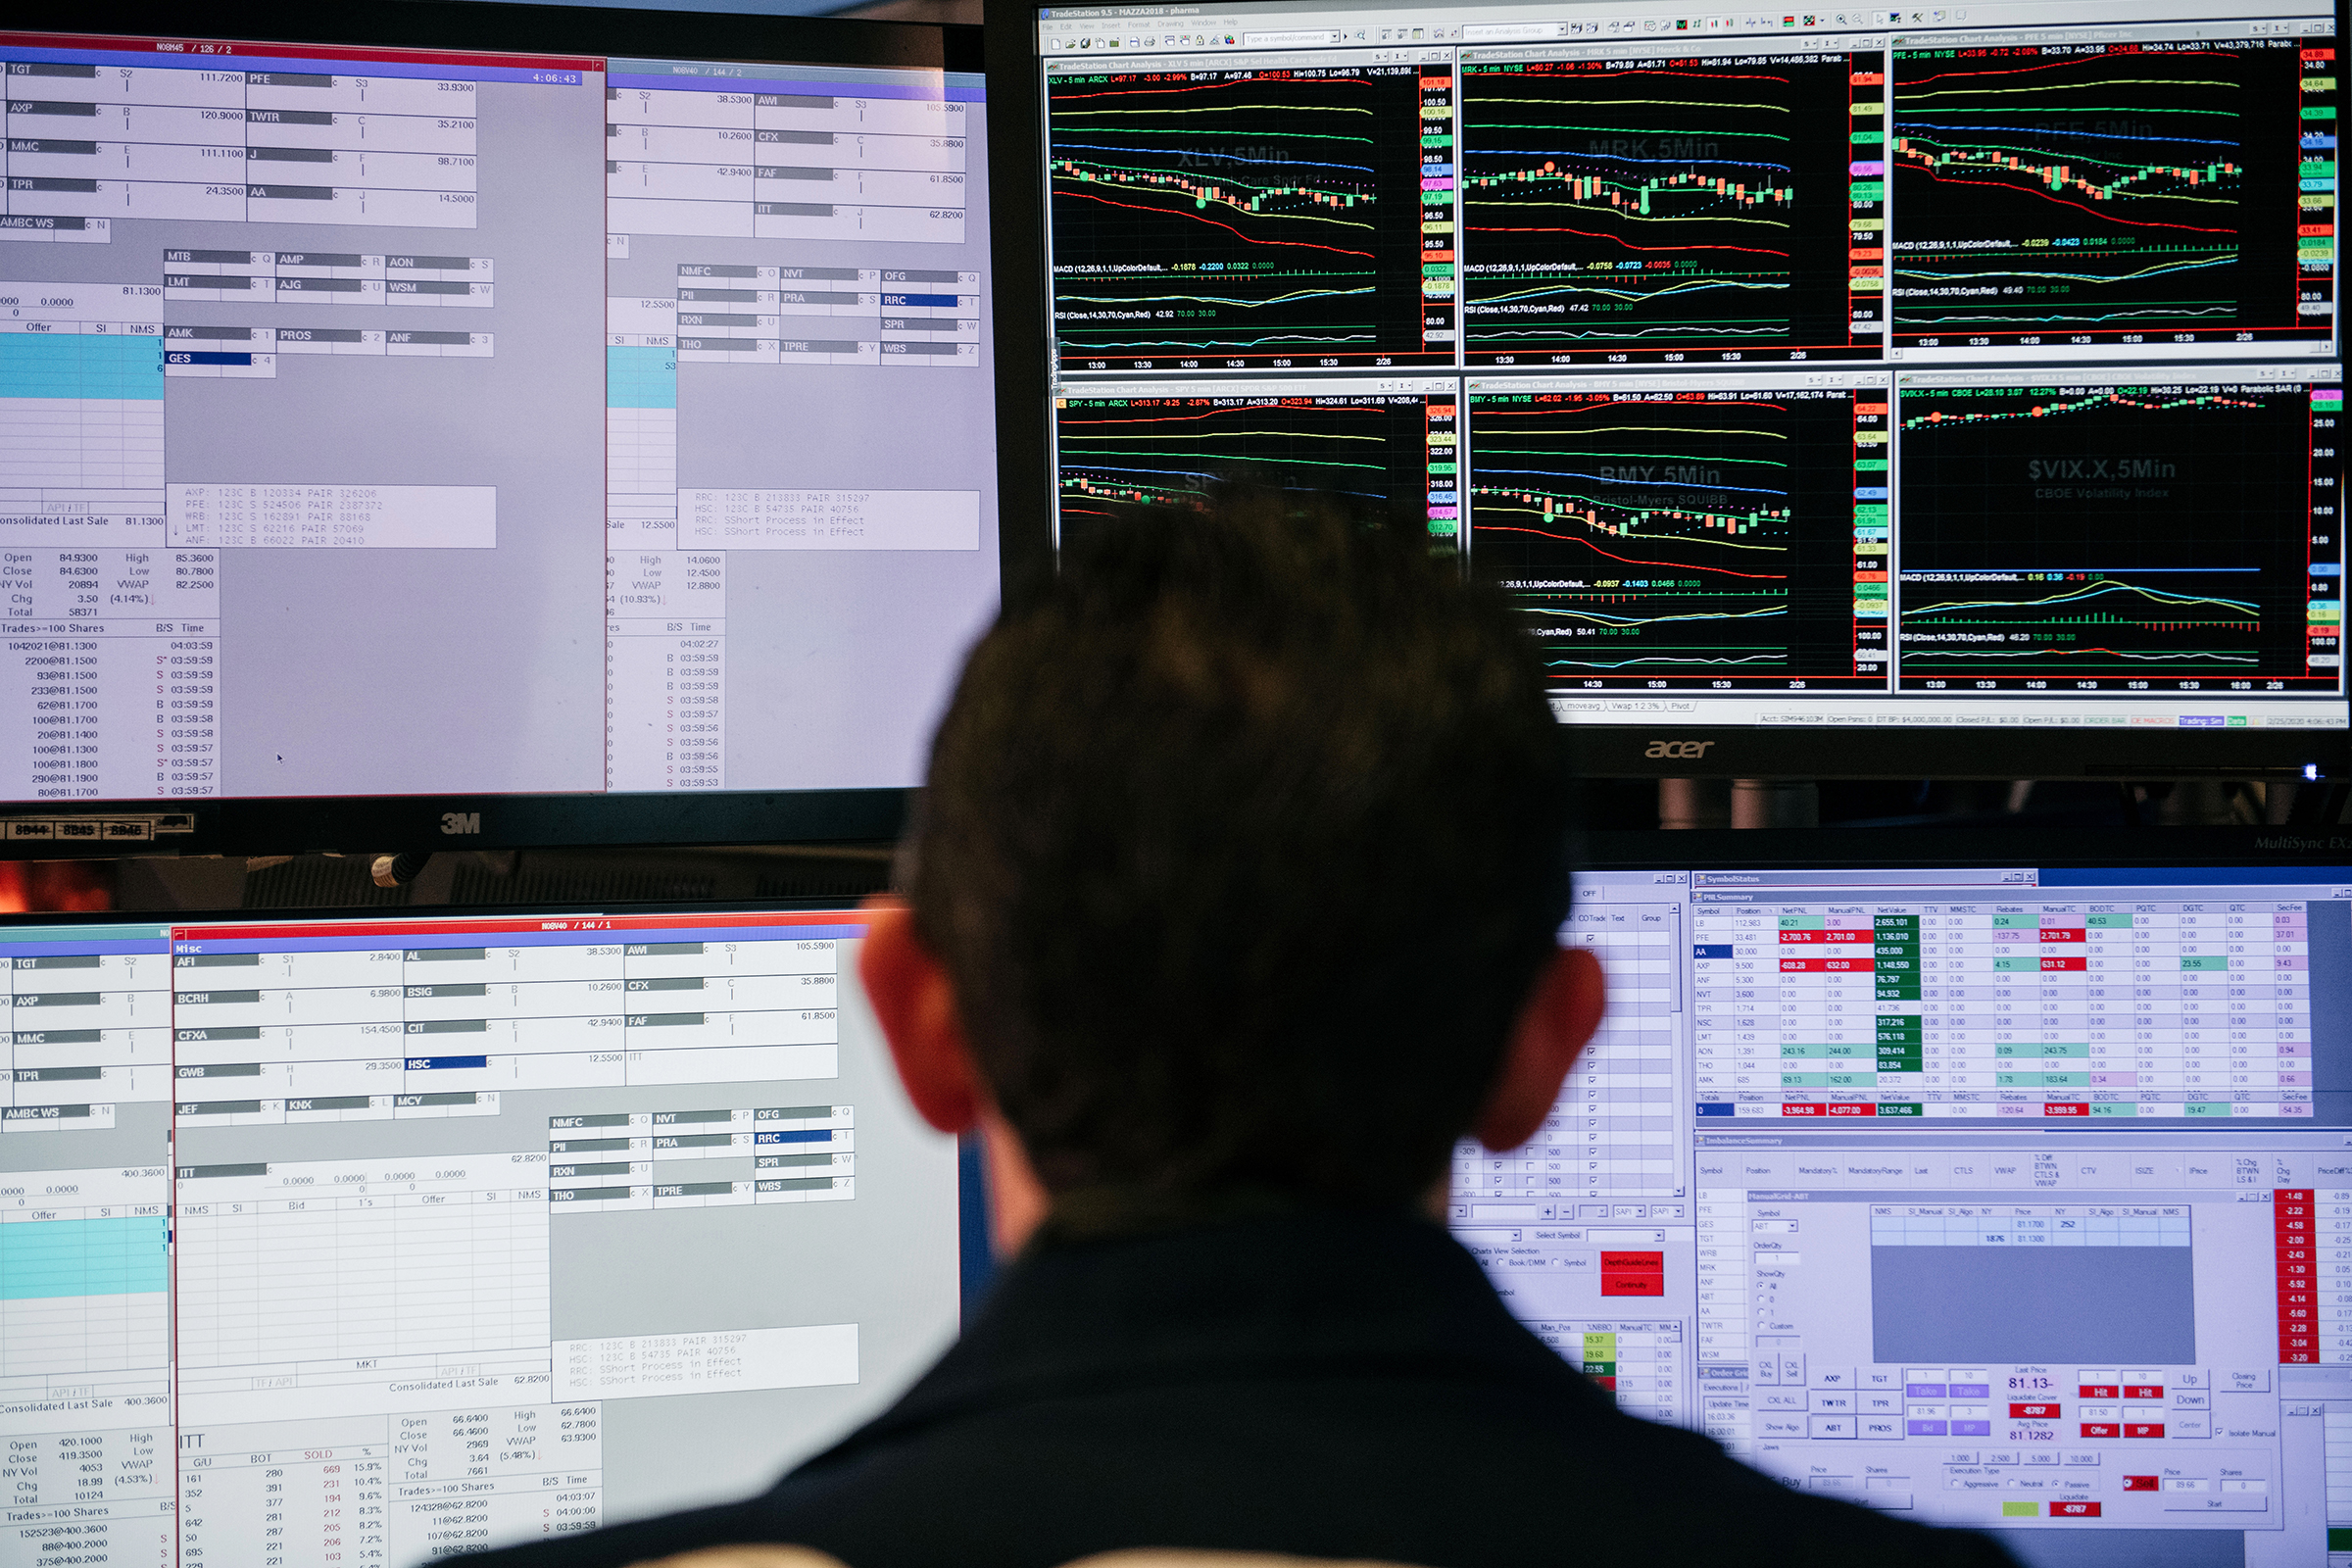 Traders work through the closing minutes of trading on the New York Stock Exchange floor on February 25, 2020 in New York City.